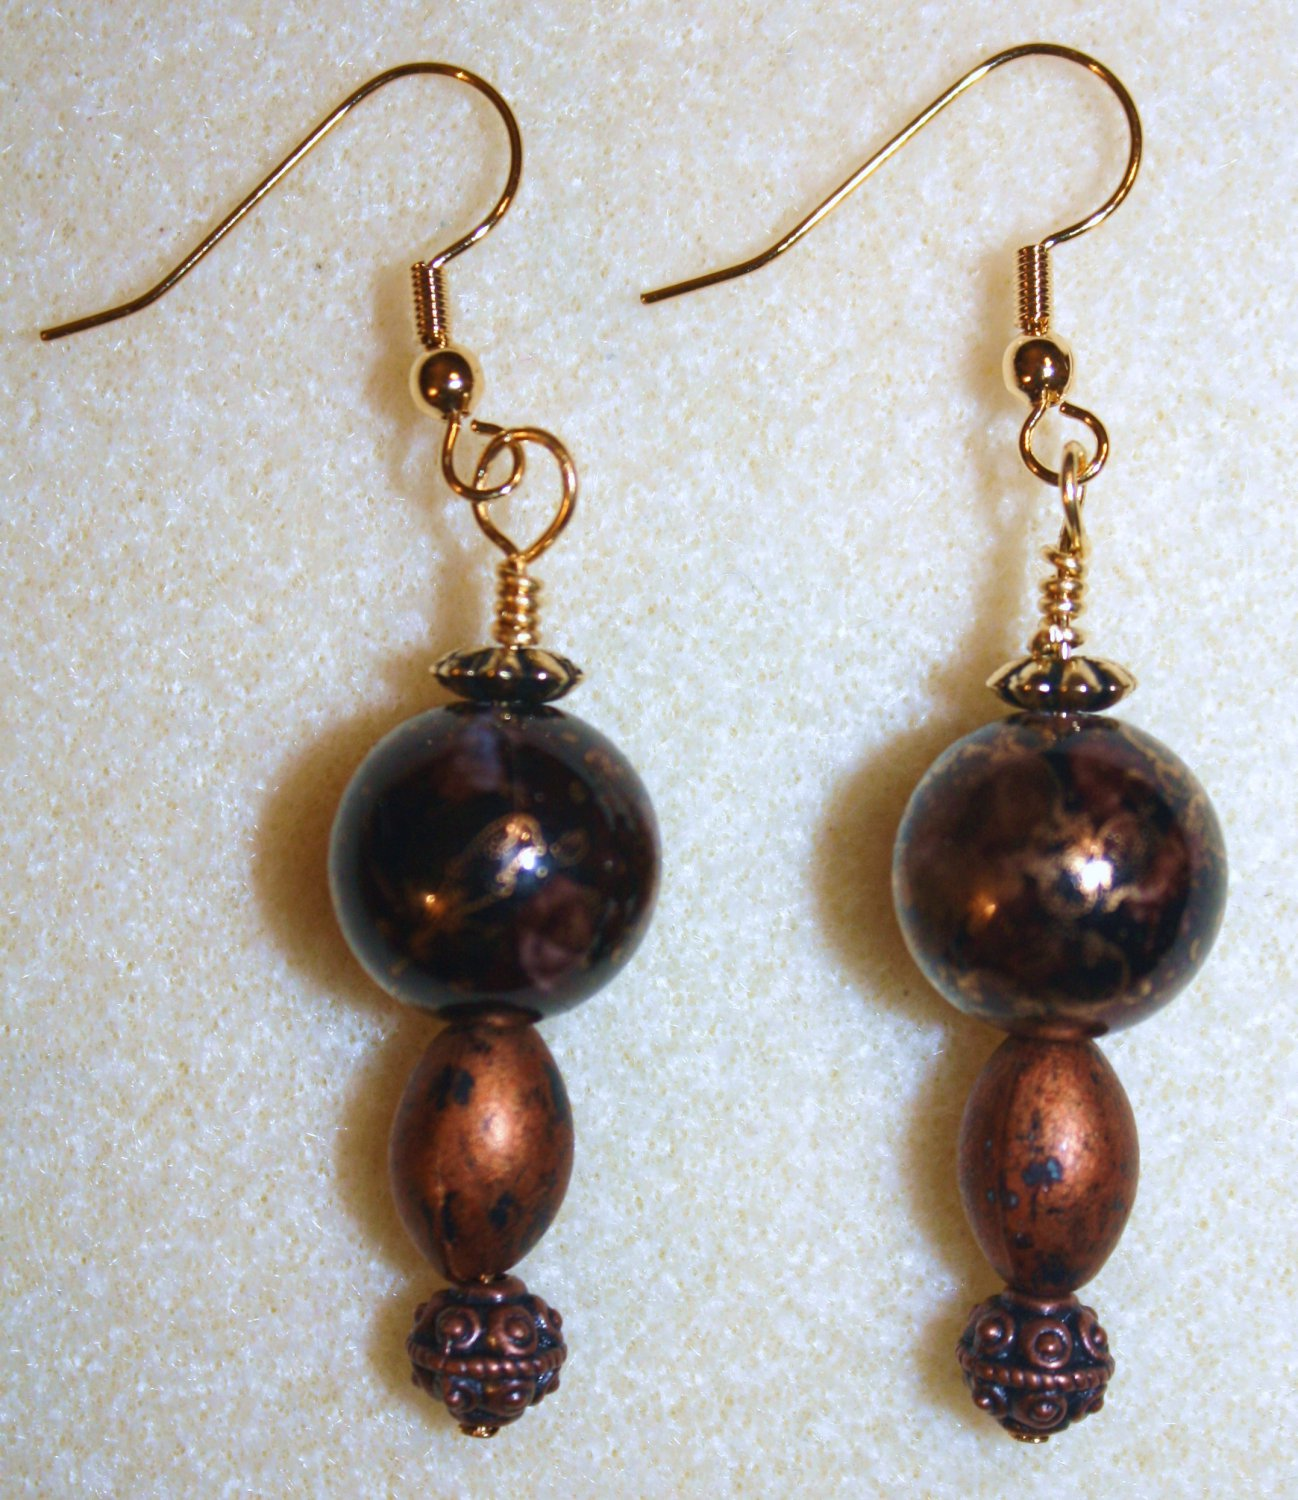 Elegant Copper Earrings - Item #E41